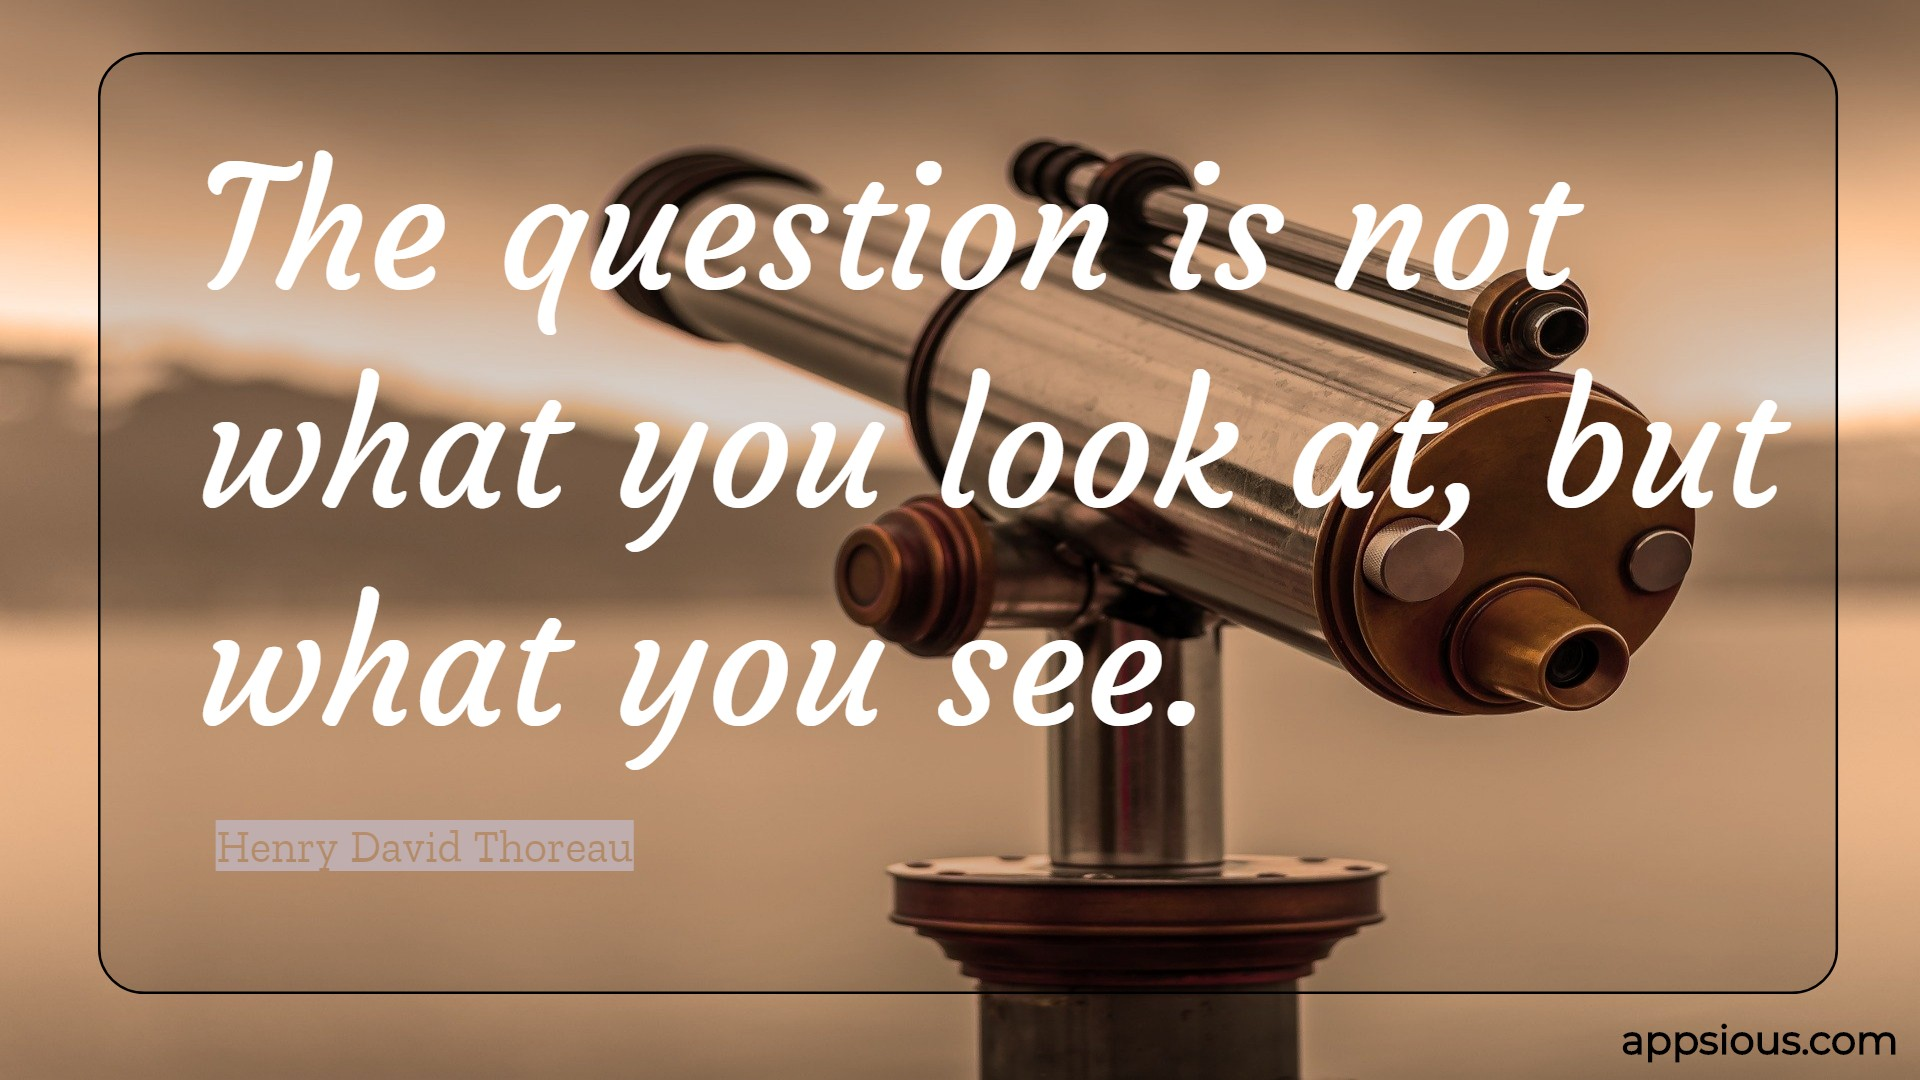 The question is not what you look at, but what you see.